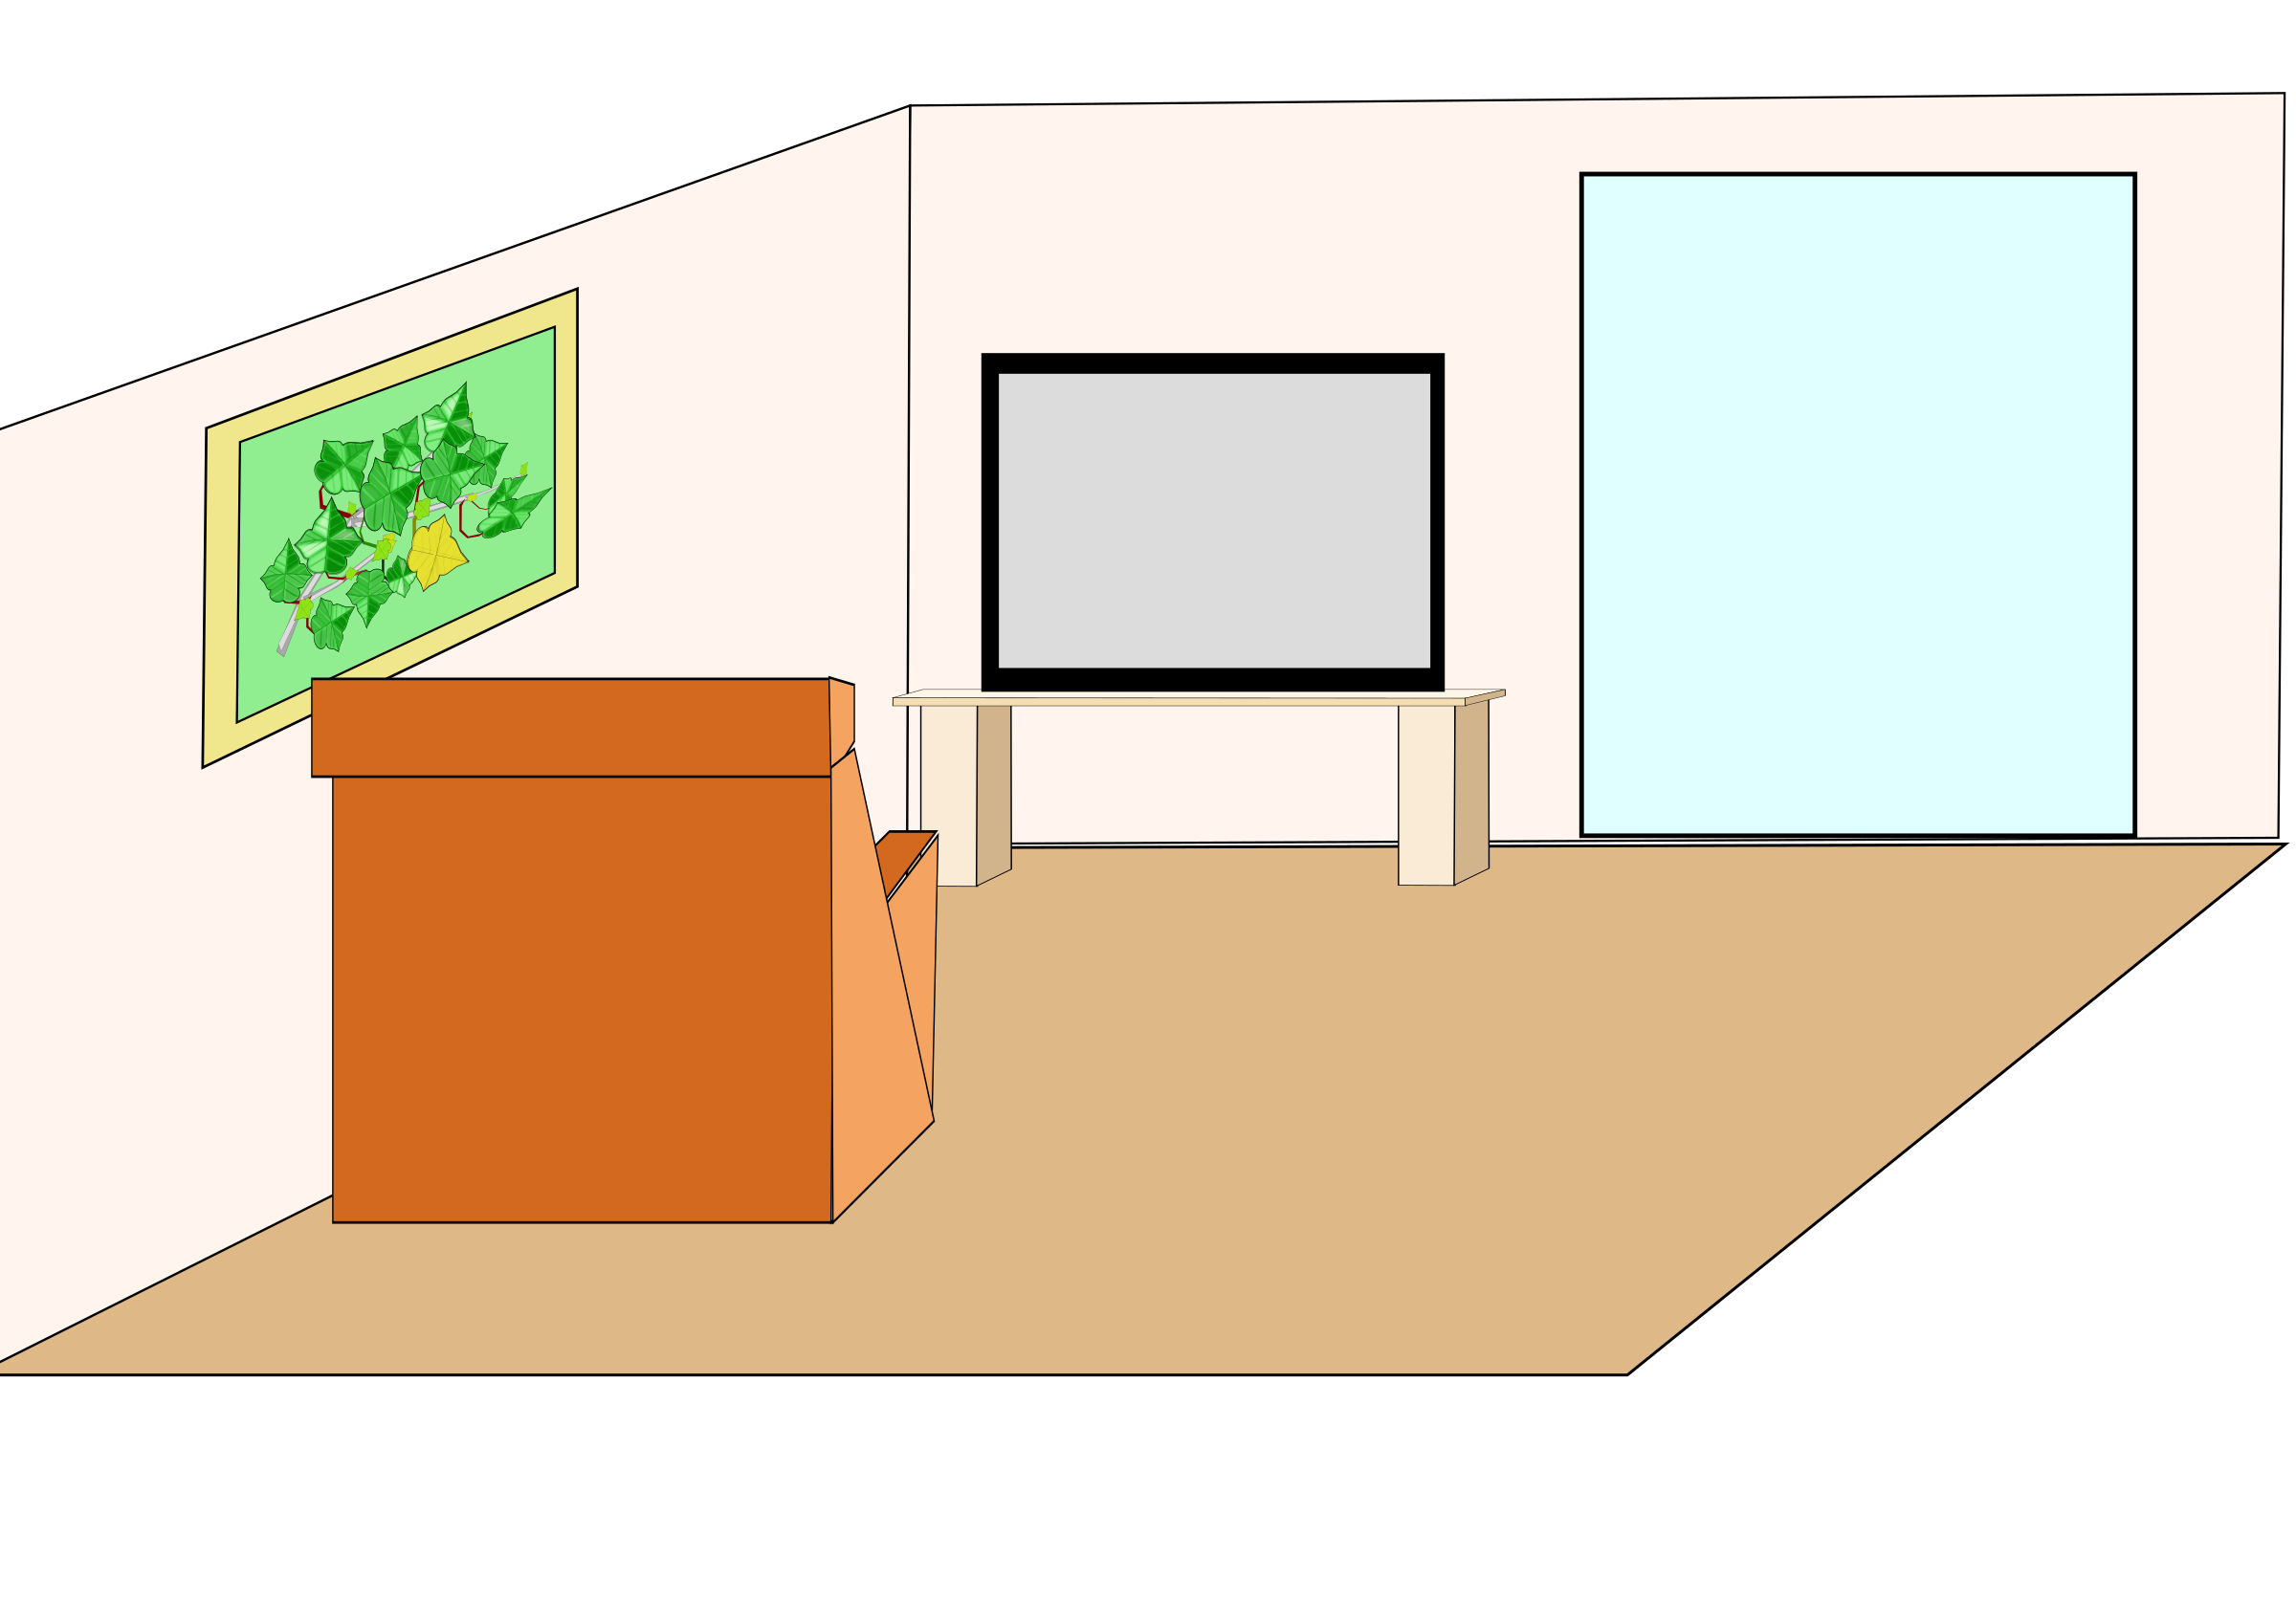 Clean clipart bed room. House interior at getdrawings